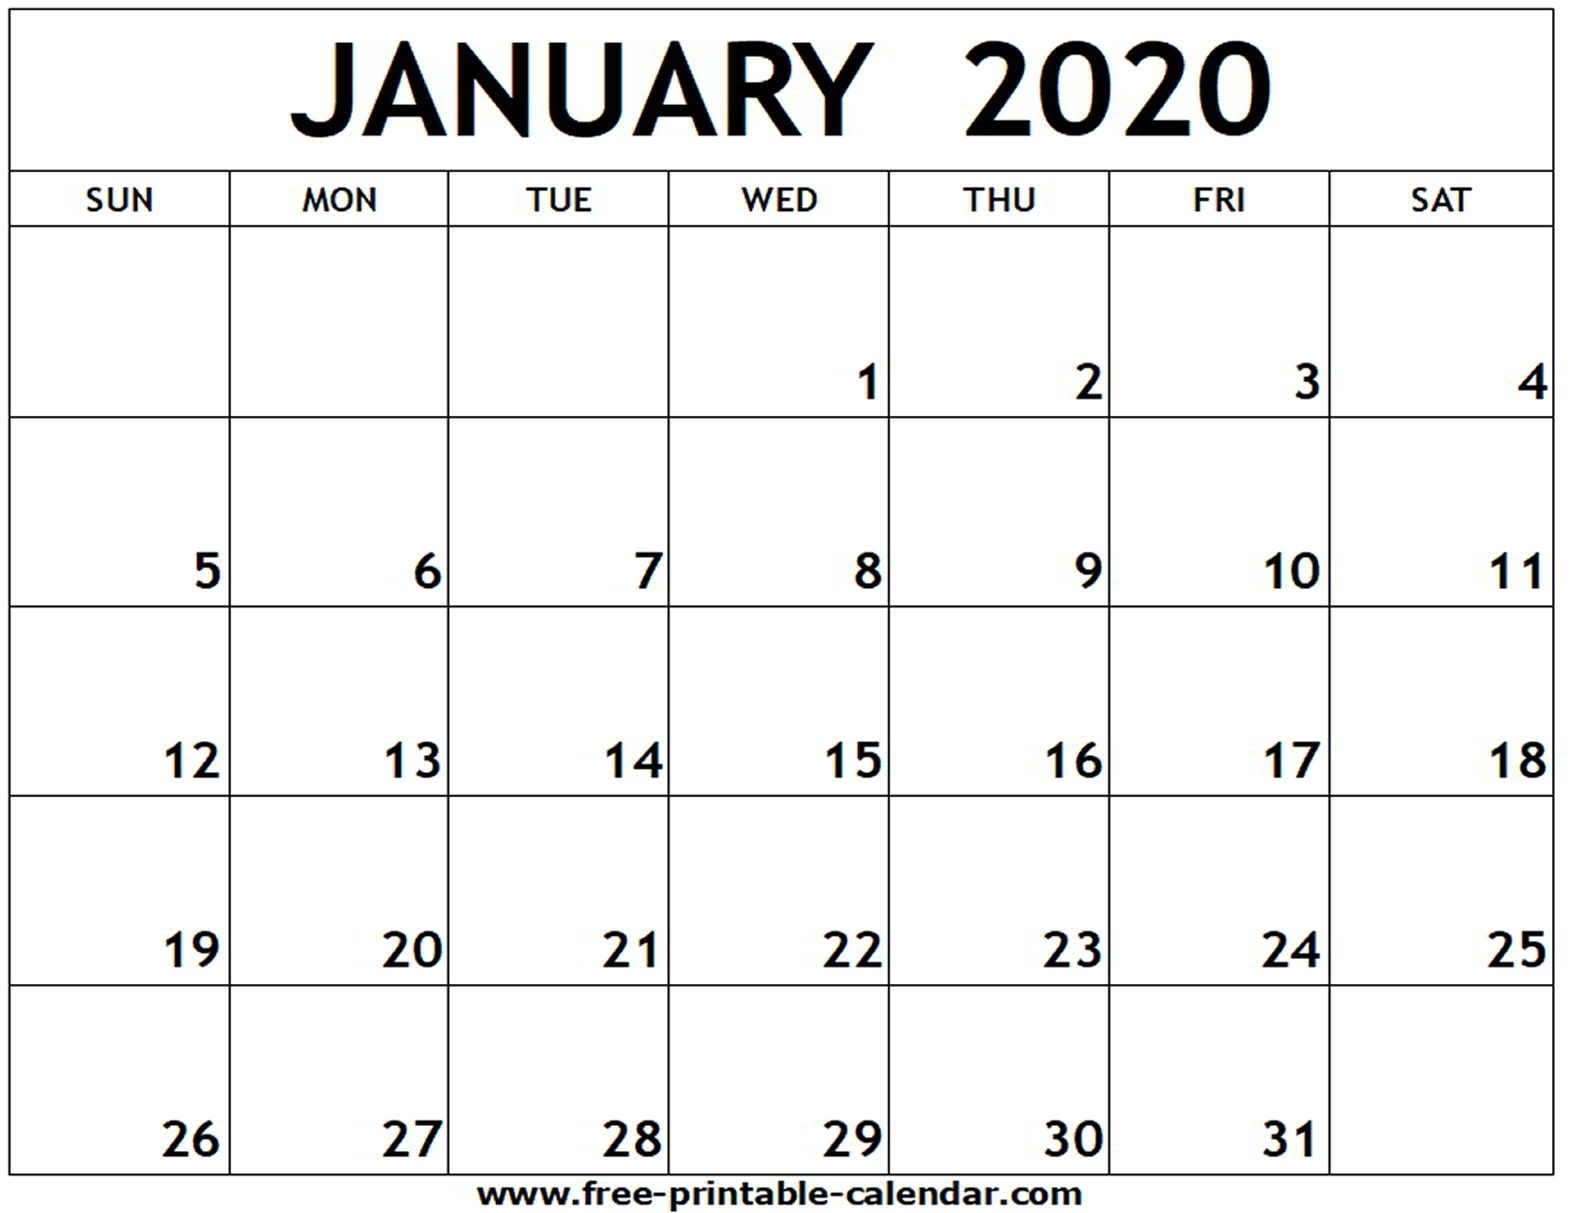 January 2020 Printable Calendar - Free-Printable-Calendar-Printable Calendar For January 2020